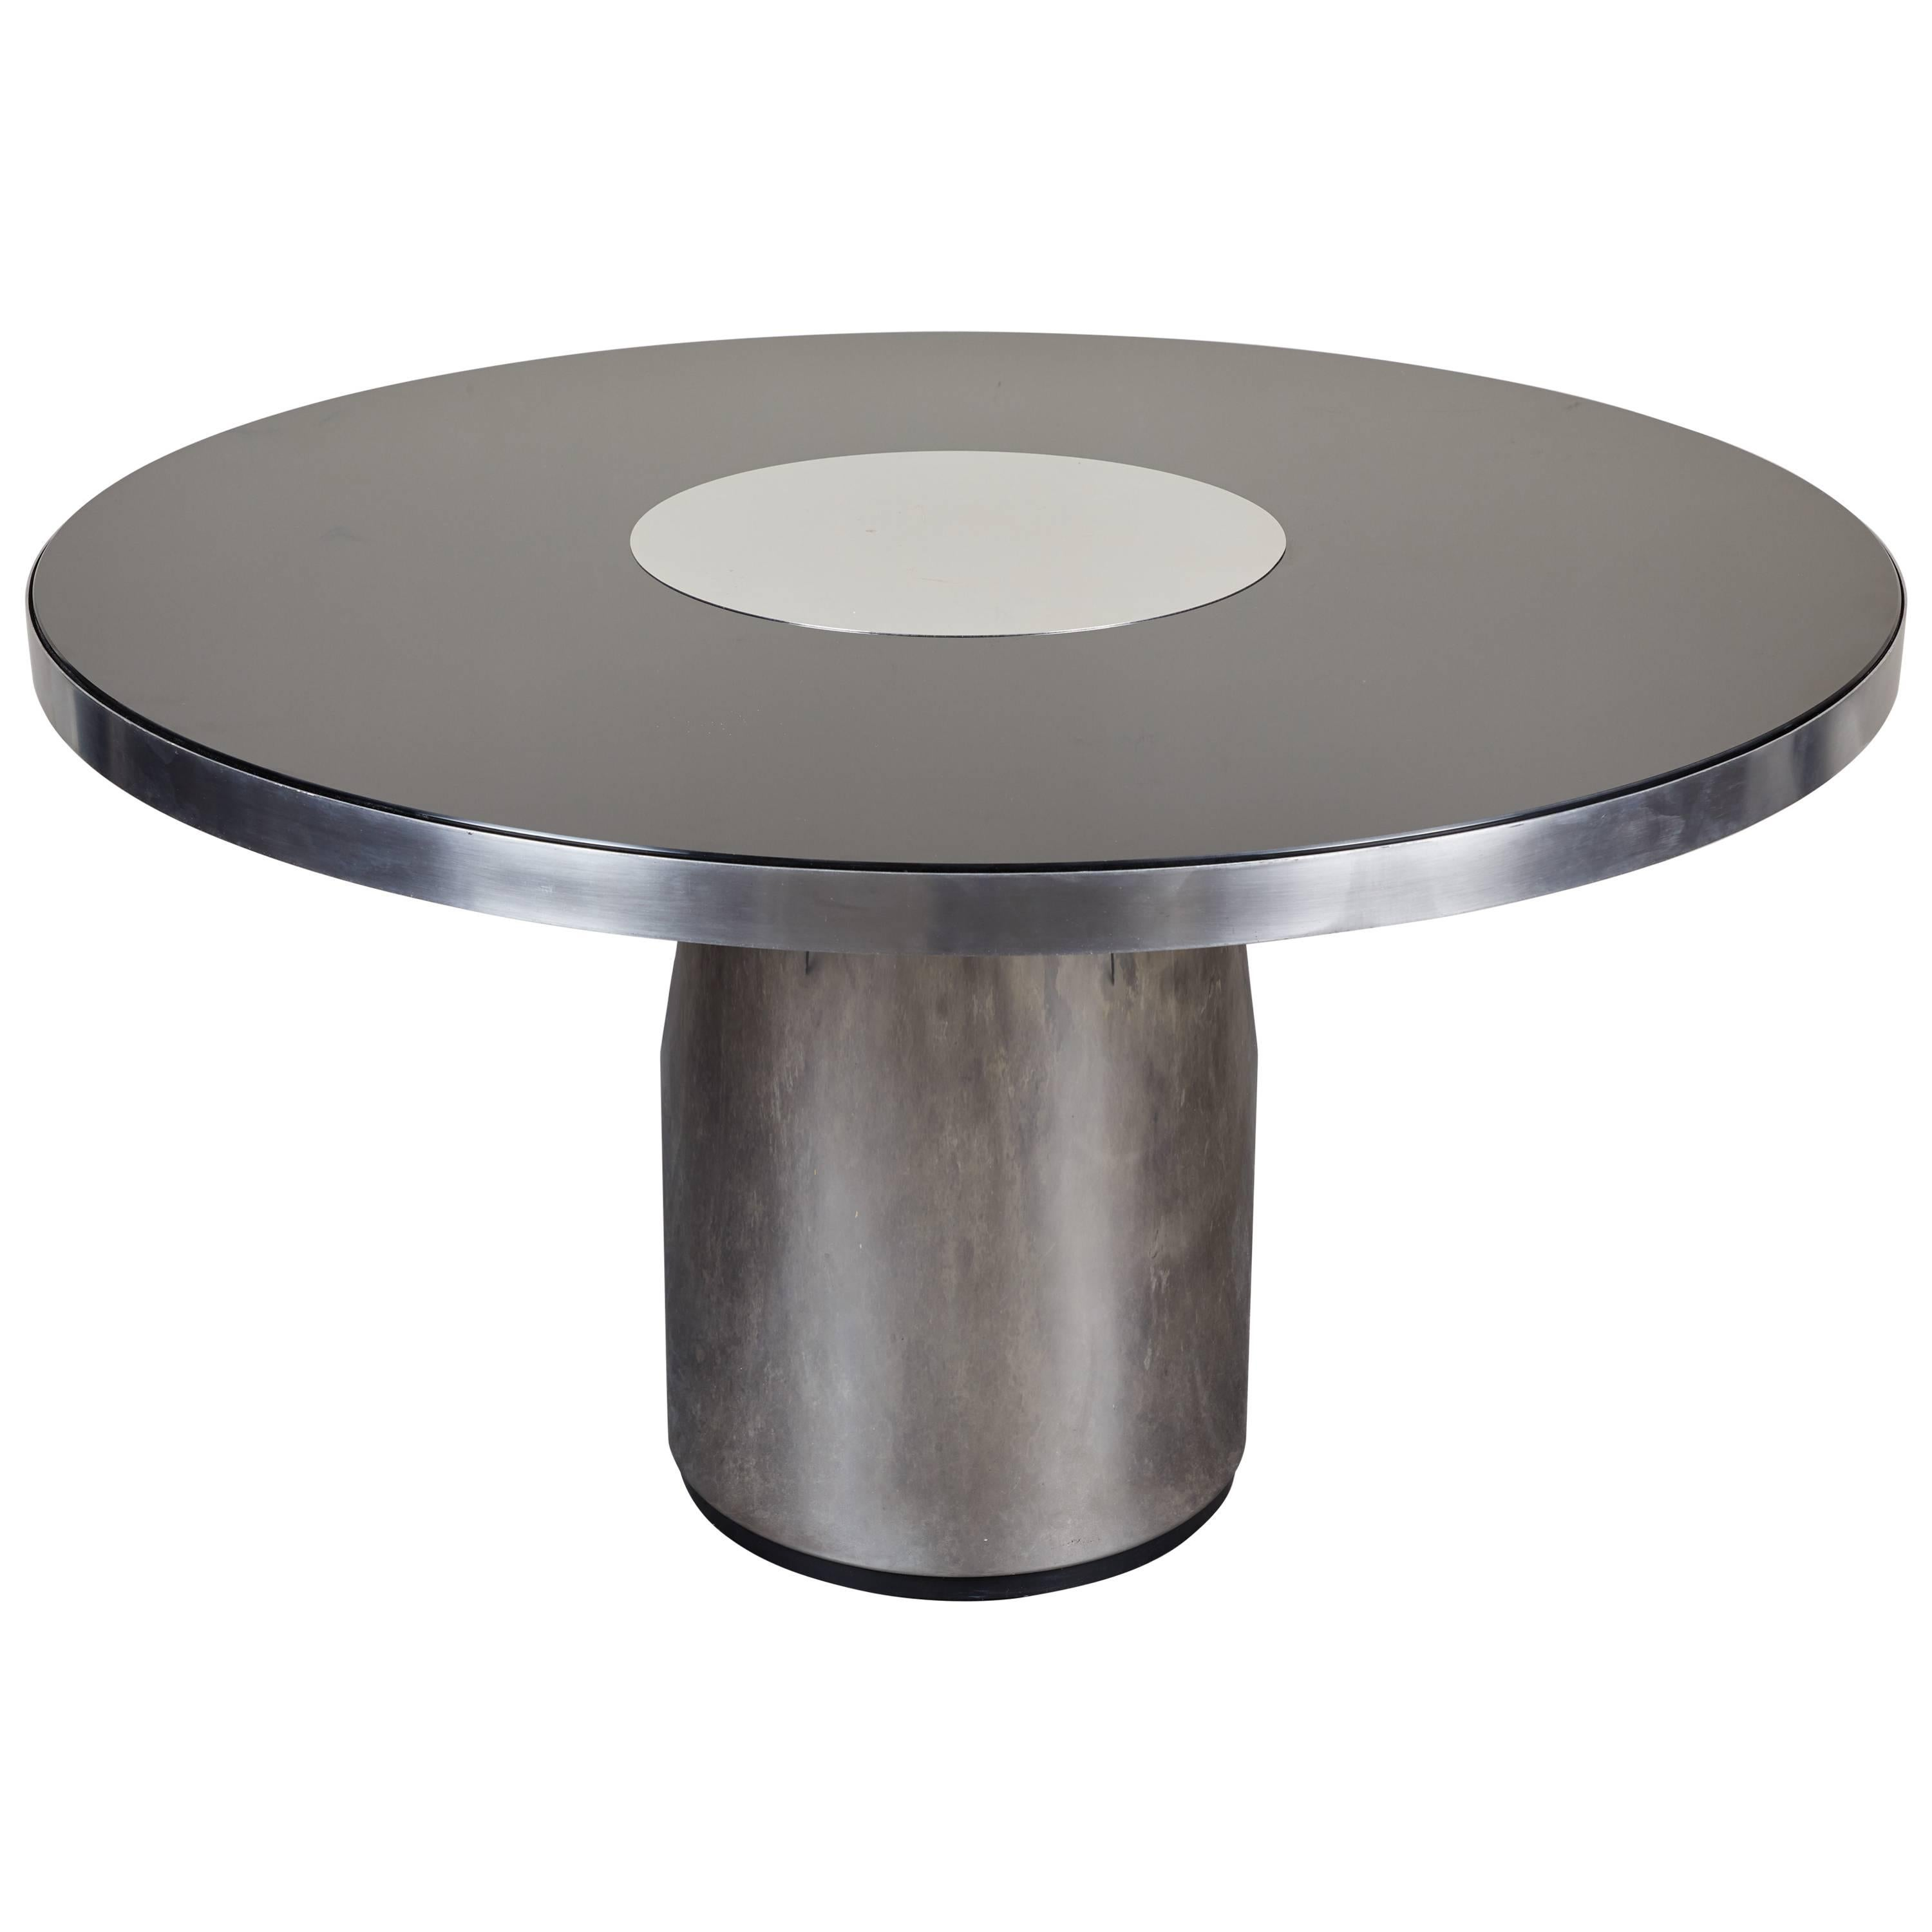 Brueton Round Steel and Glass Table, Paul Evans Style